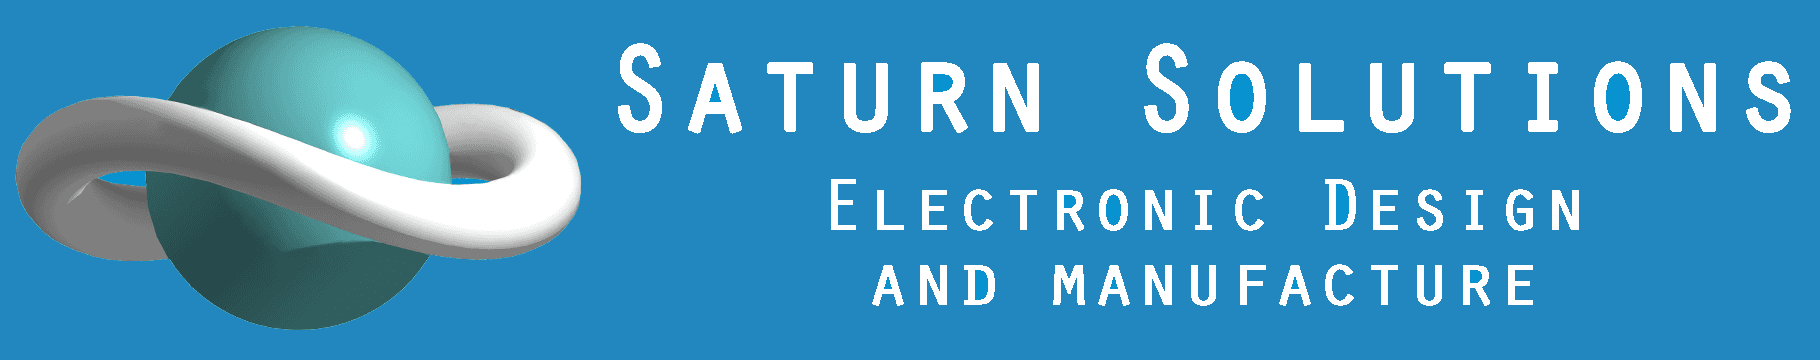 Saturn Solutions _ Electronic Design and Manufacture Company Logo